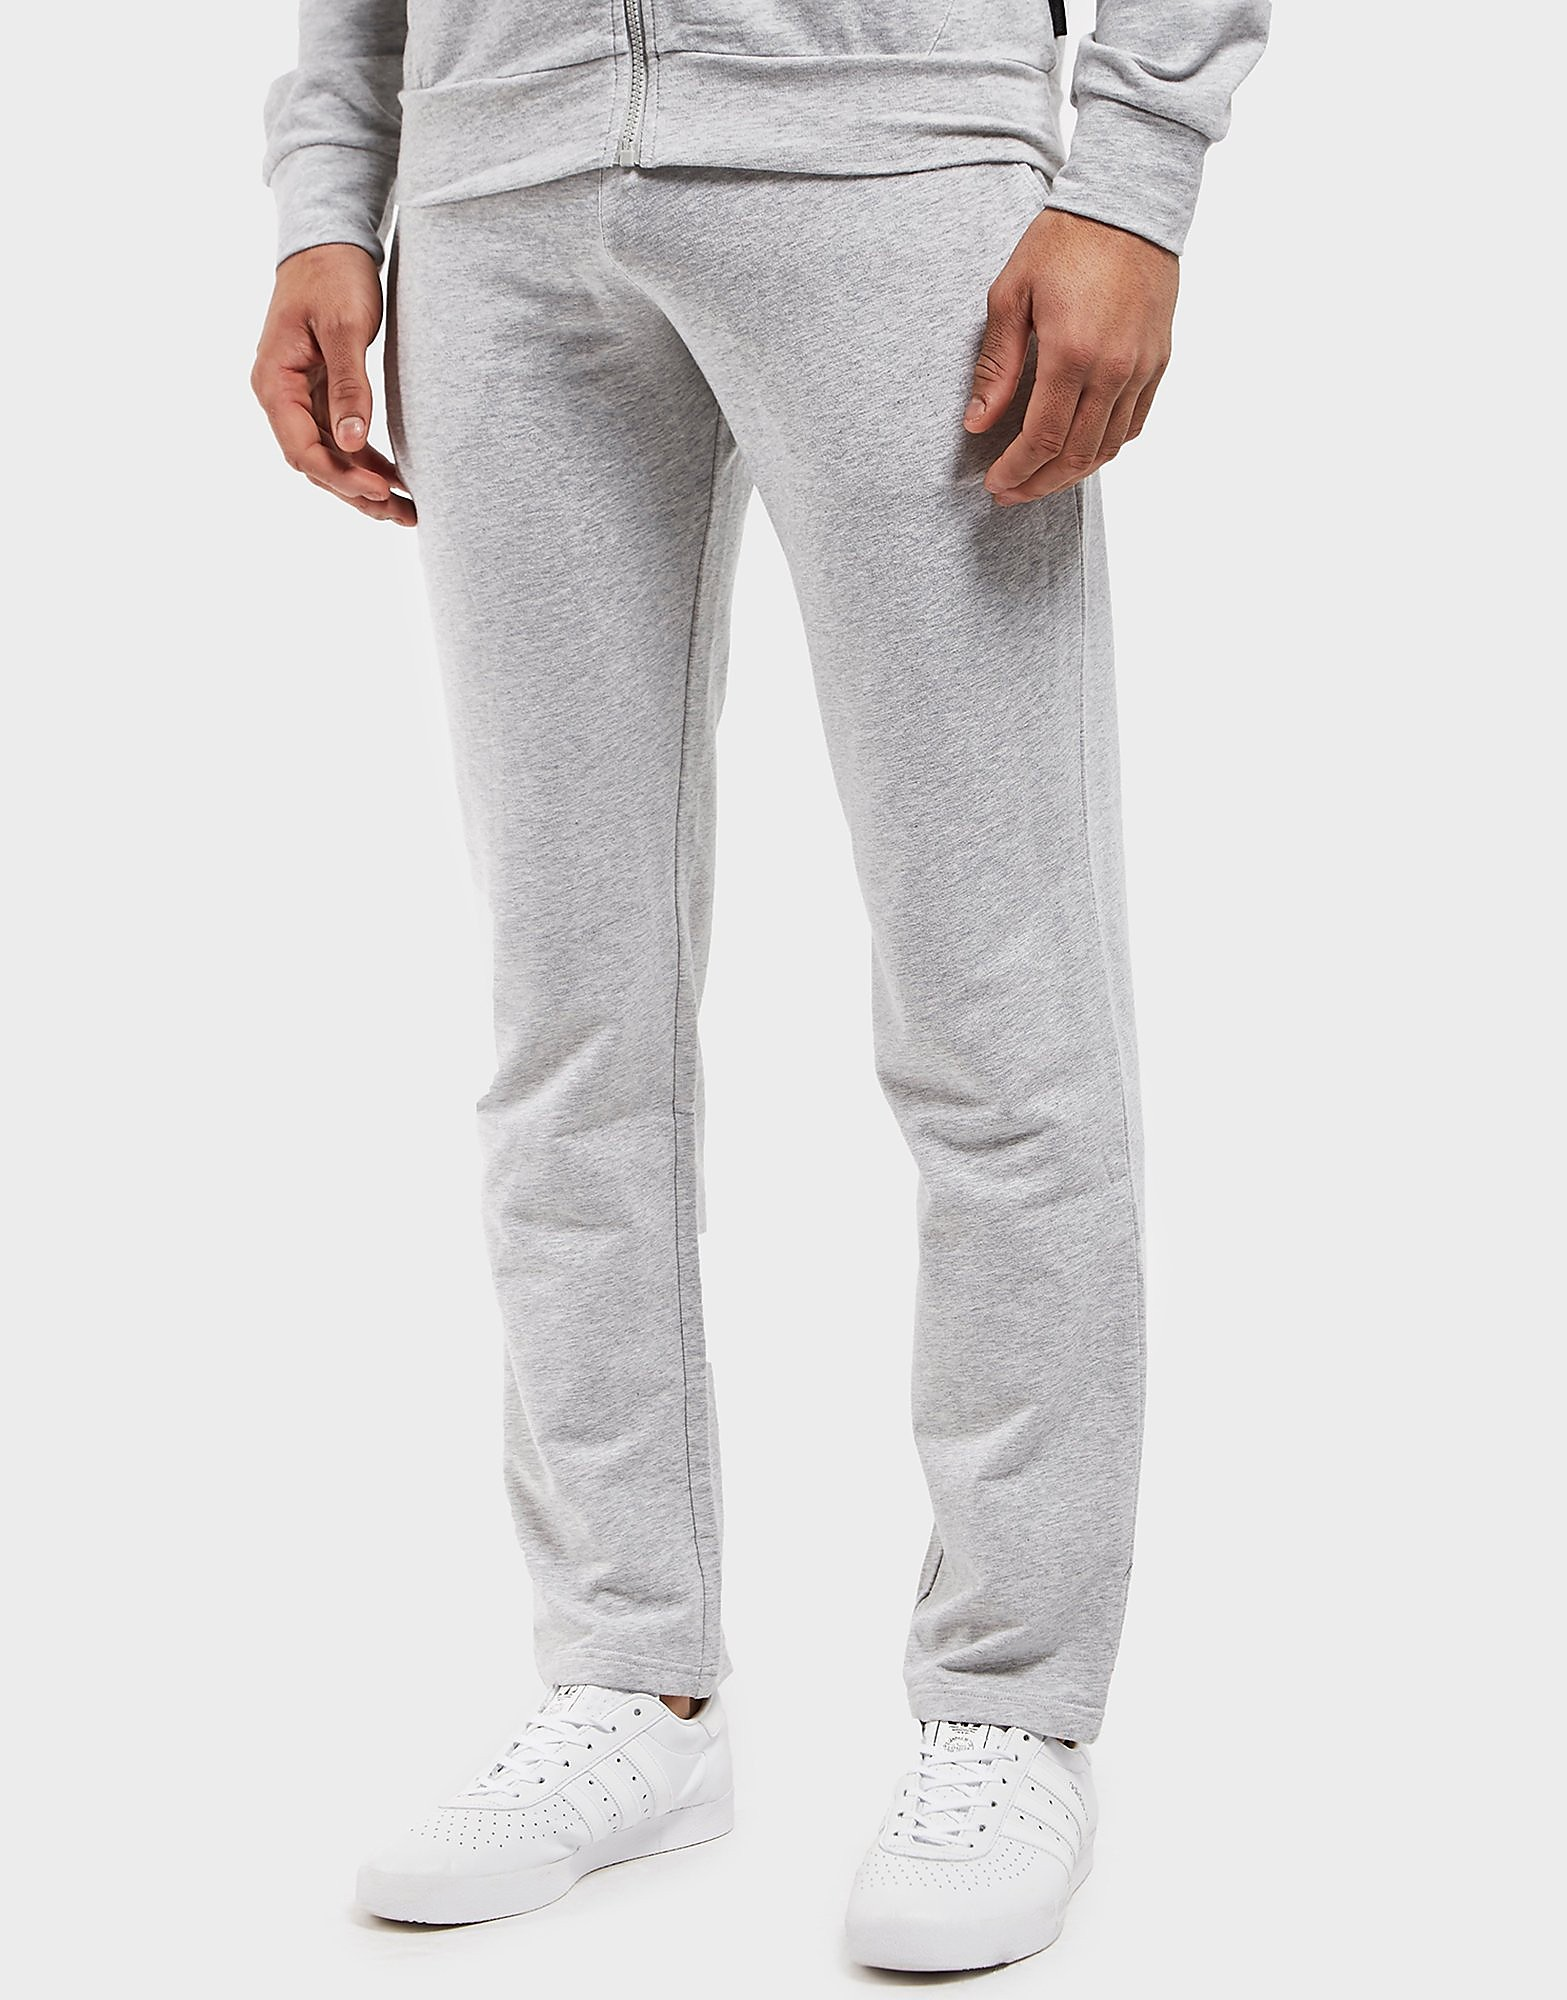 Emporio Armani Shiny Eagle Back Cuffed Track Pants